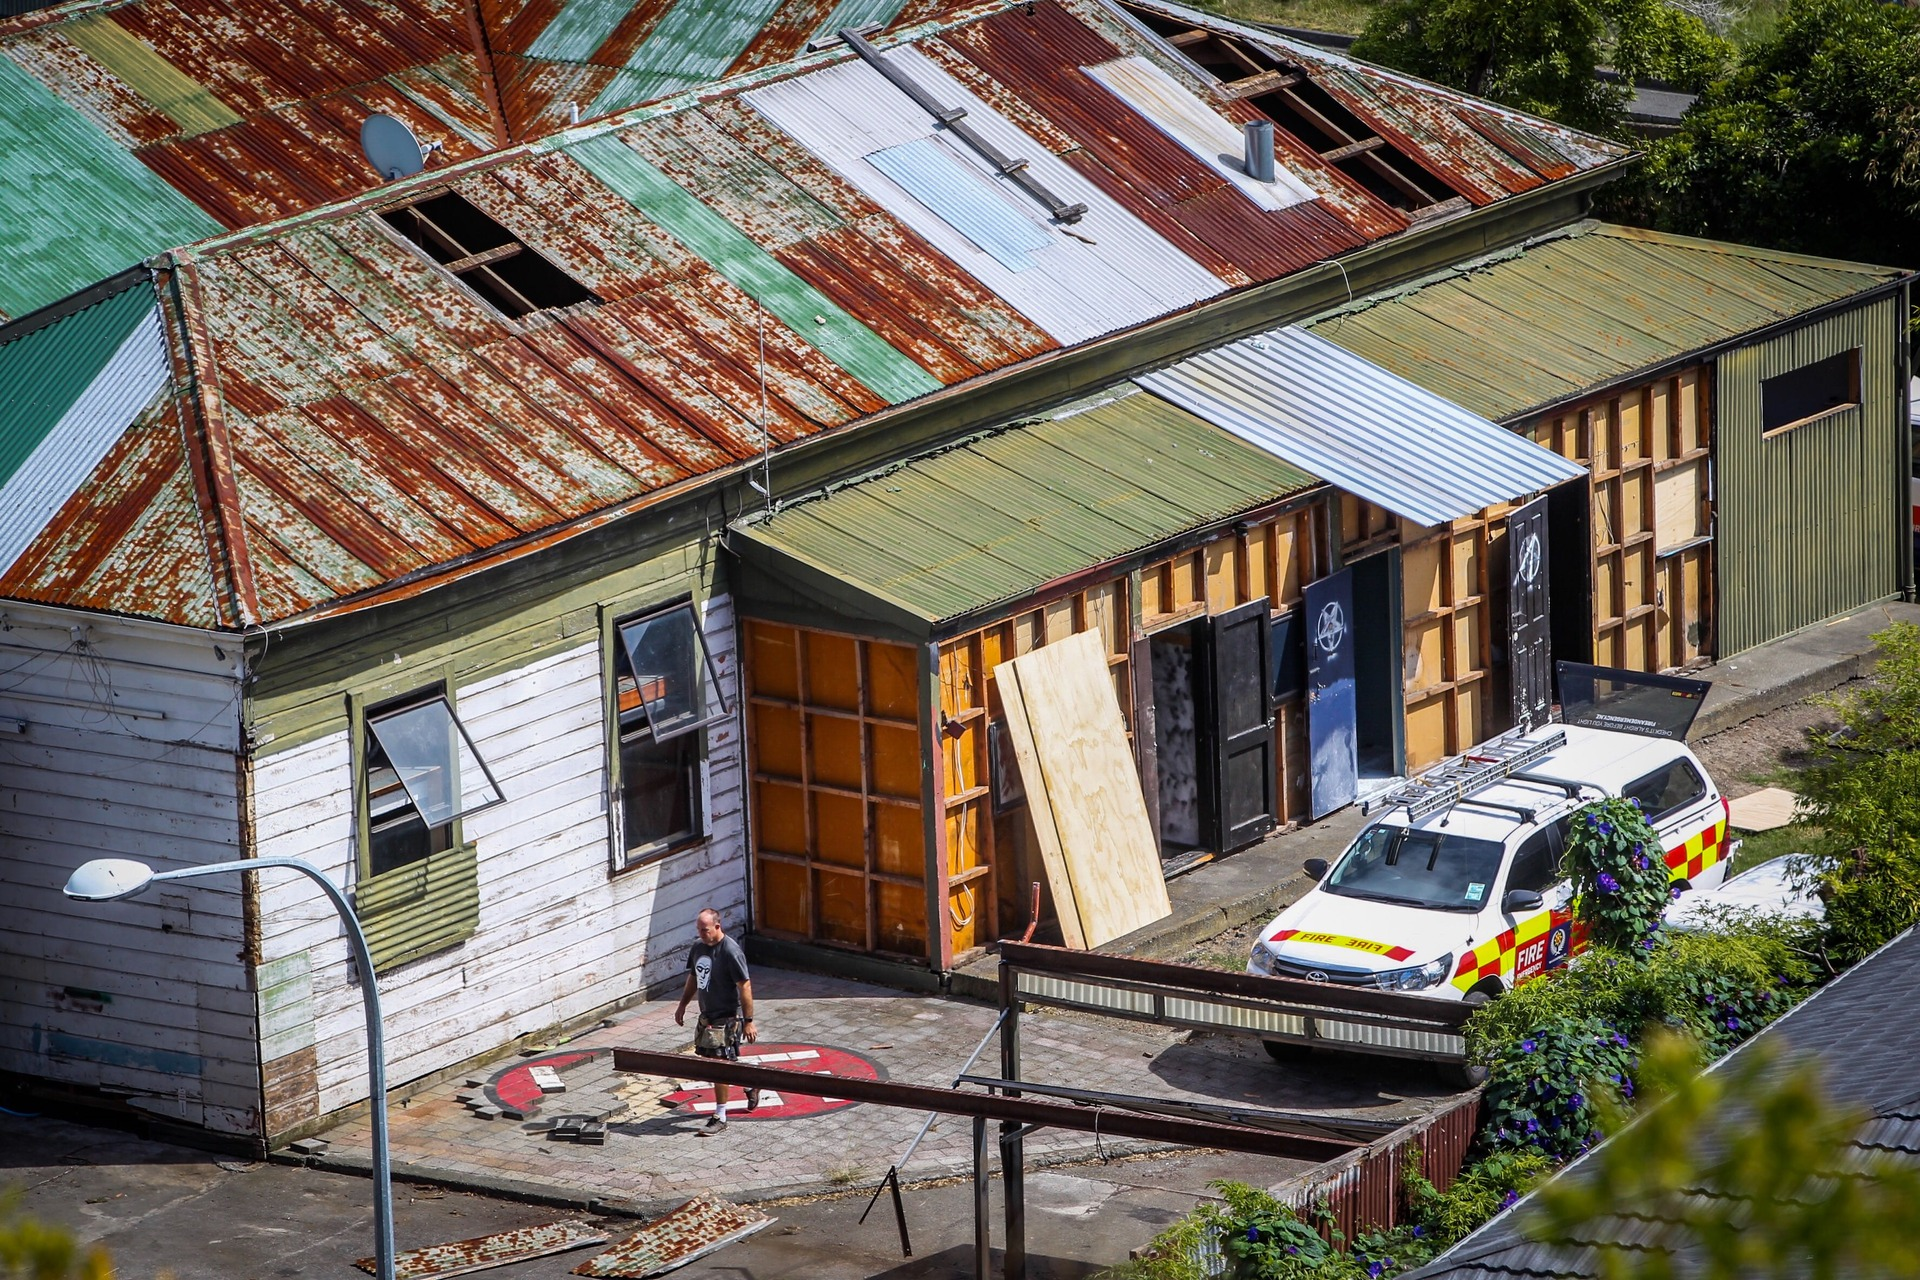 'Disappointed' Napier firefighters cancel training exercise